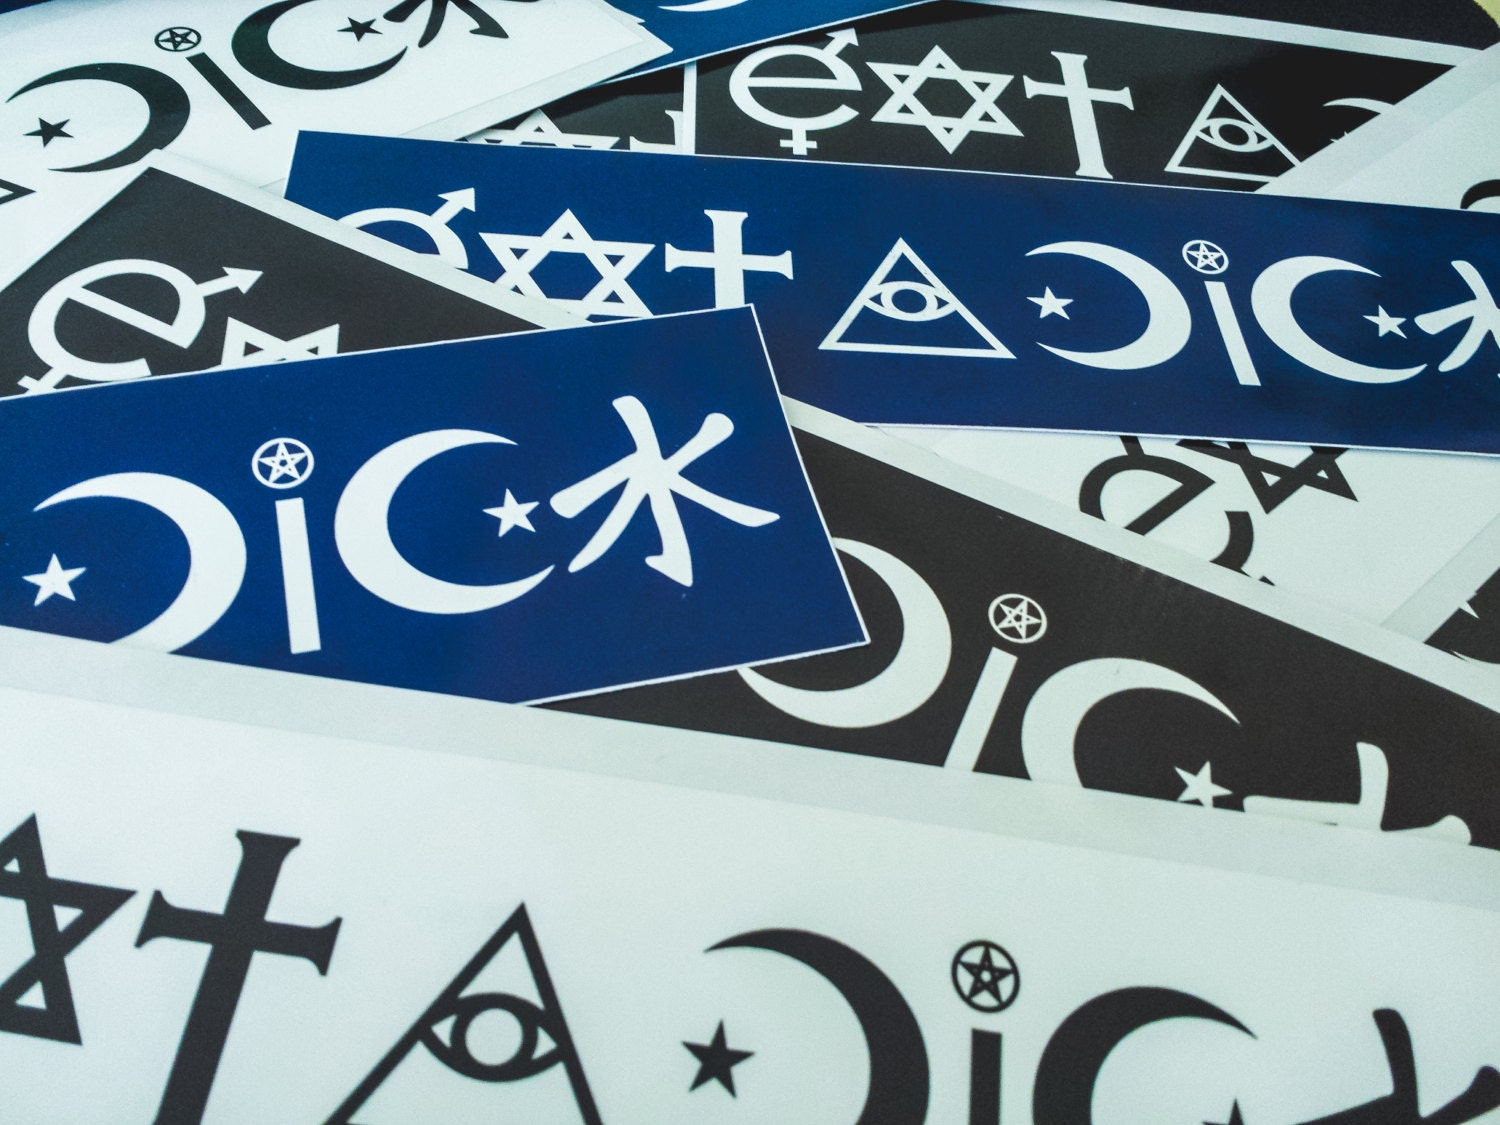 The original eat a dick atheist coexist parody removable zoom biocorpaavc